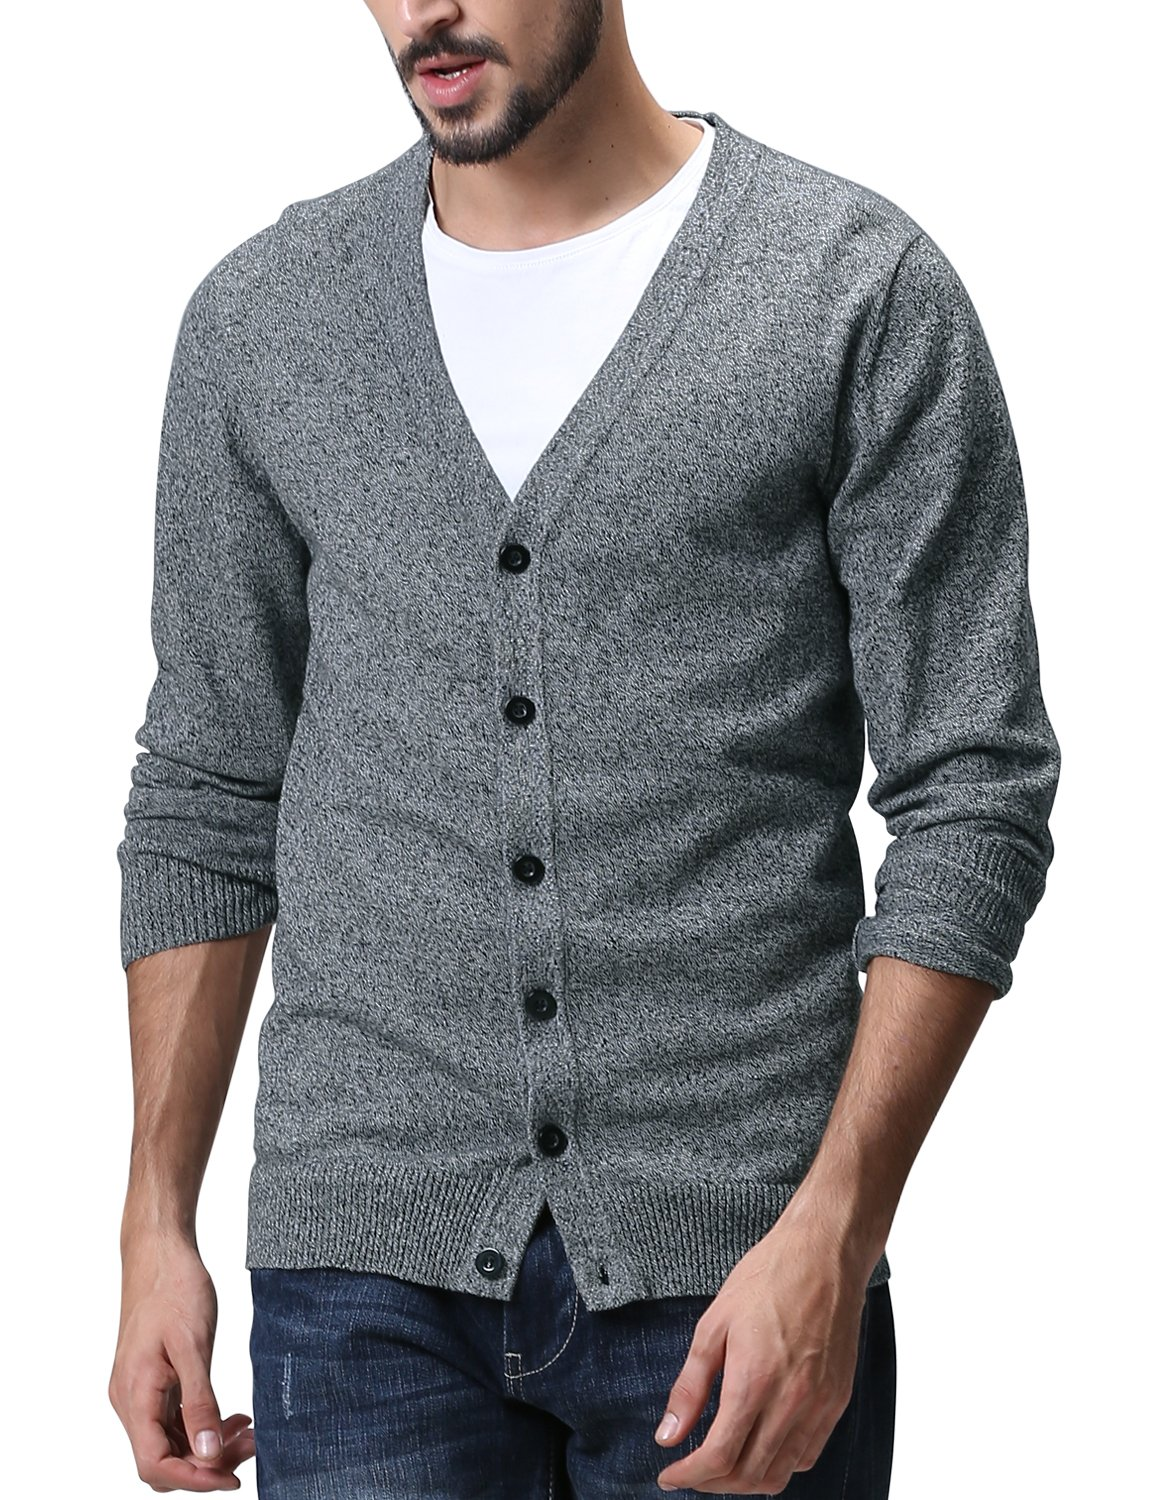 Match Men's Sweater Series V-Neck Button Up Cardigan #Z1522(US M (Tag size XL),Z1522 Medium heather gray)